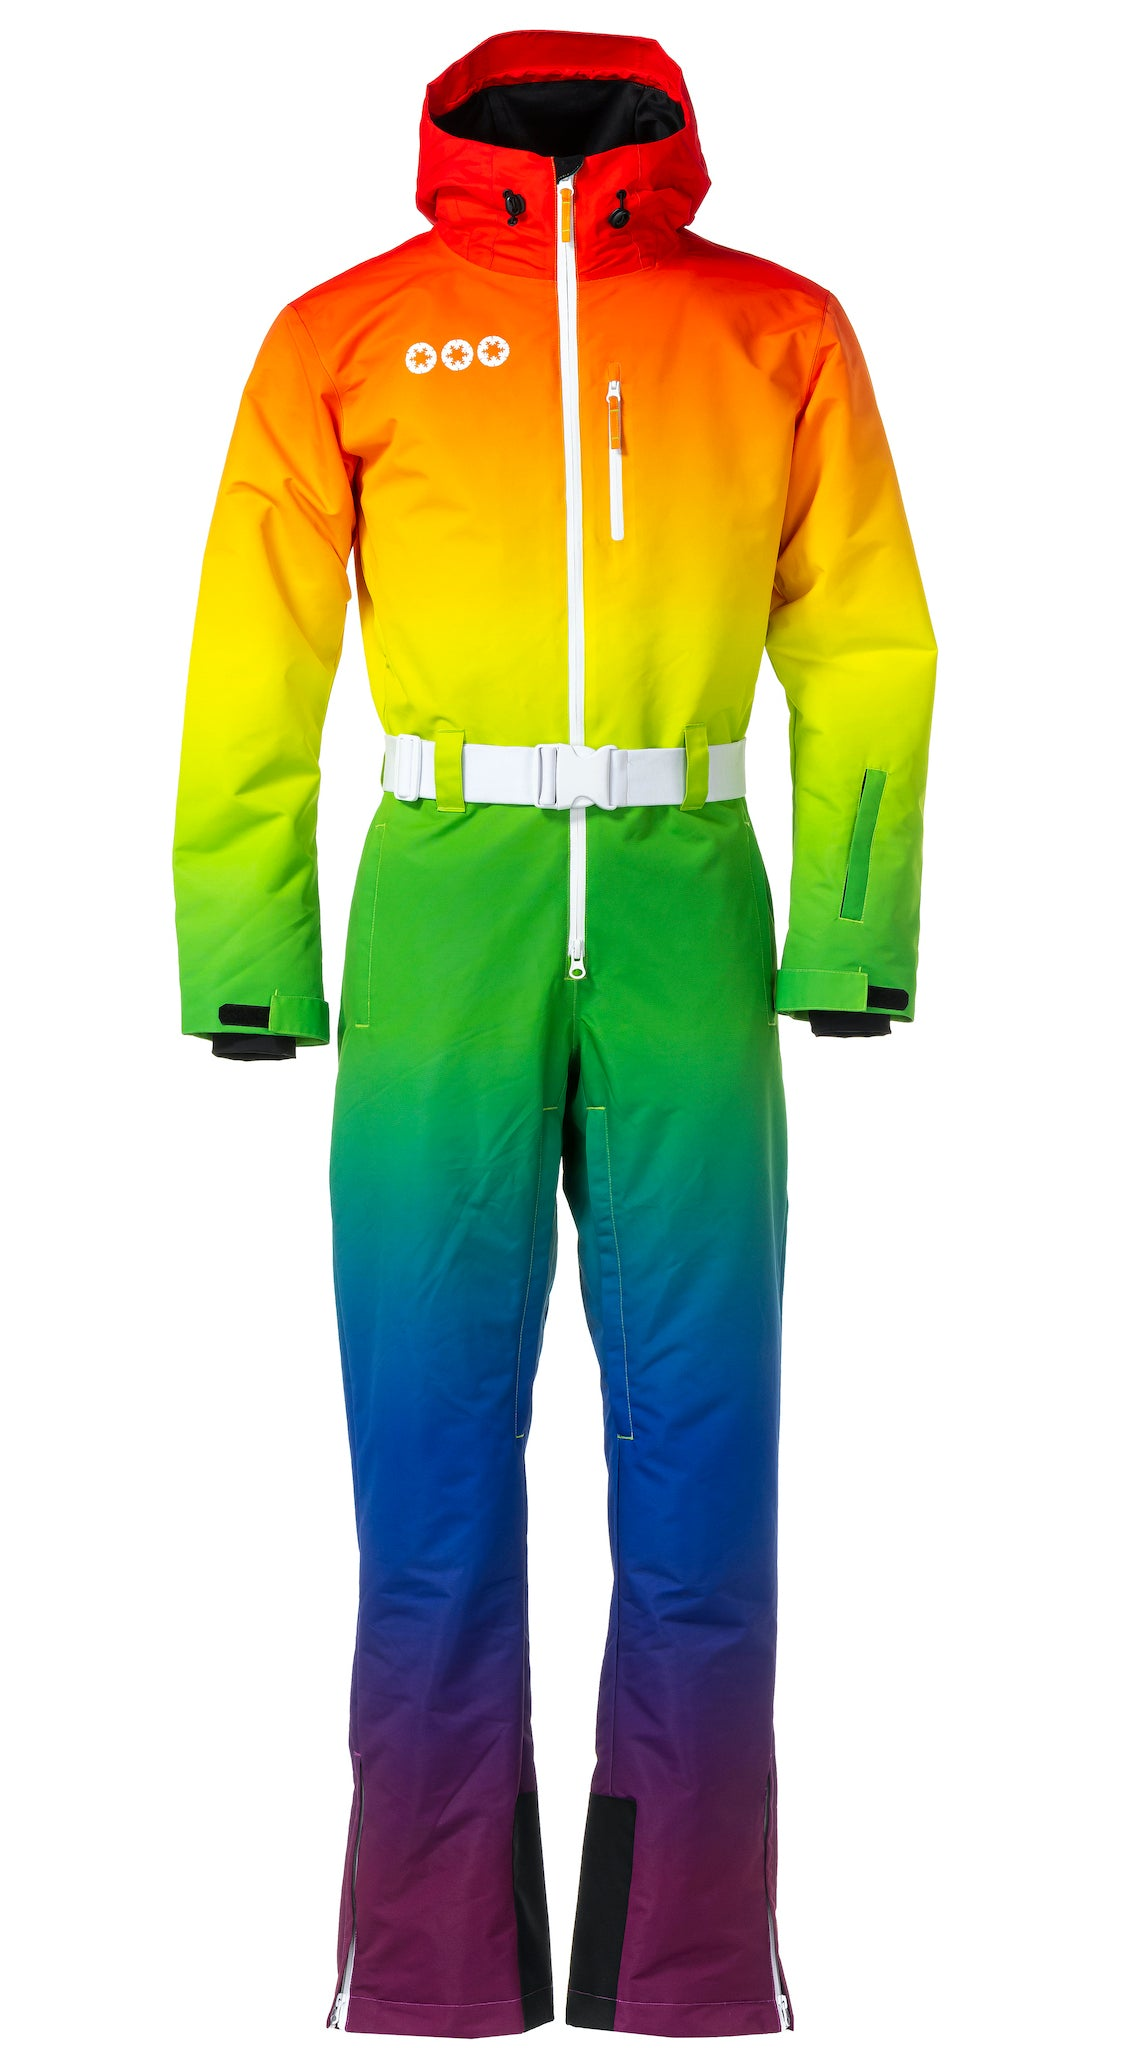 Over the Rainbow | Unisex Ski Suit - Willyfinder